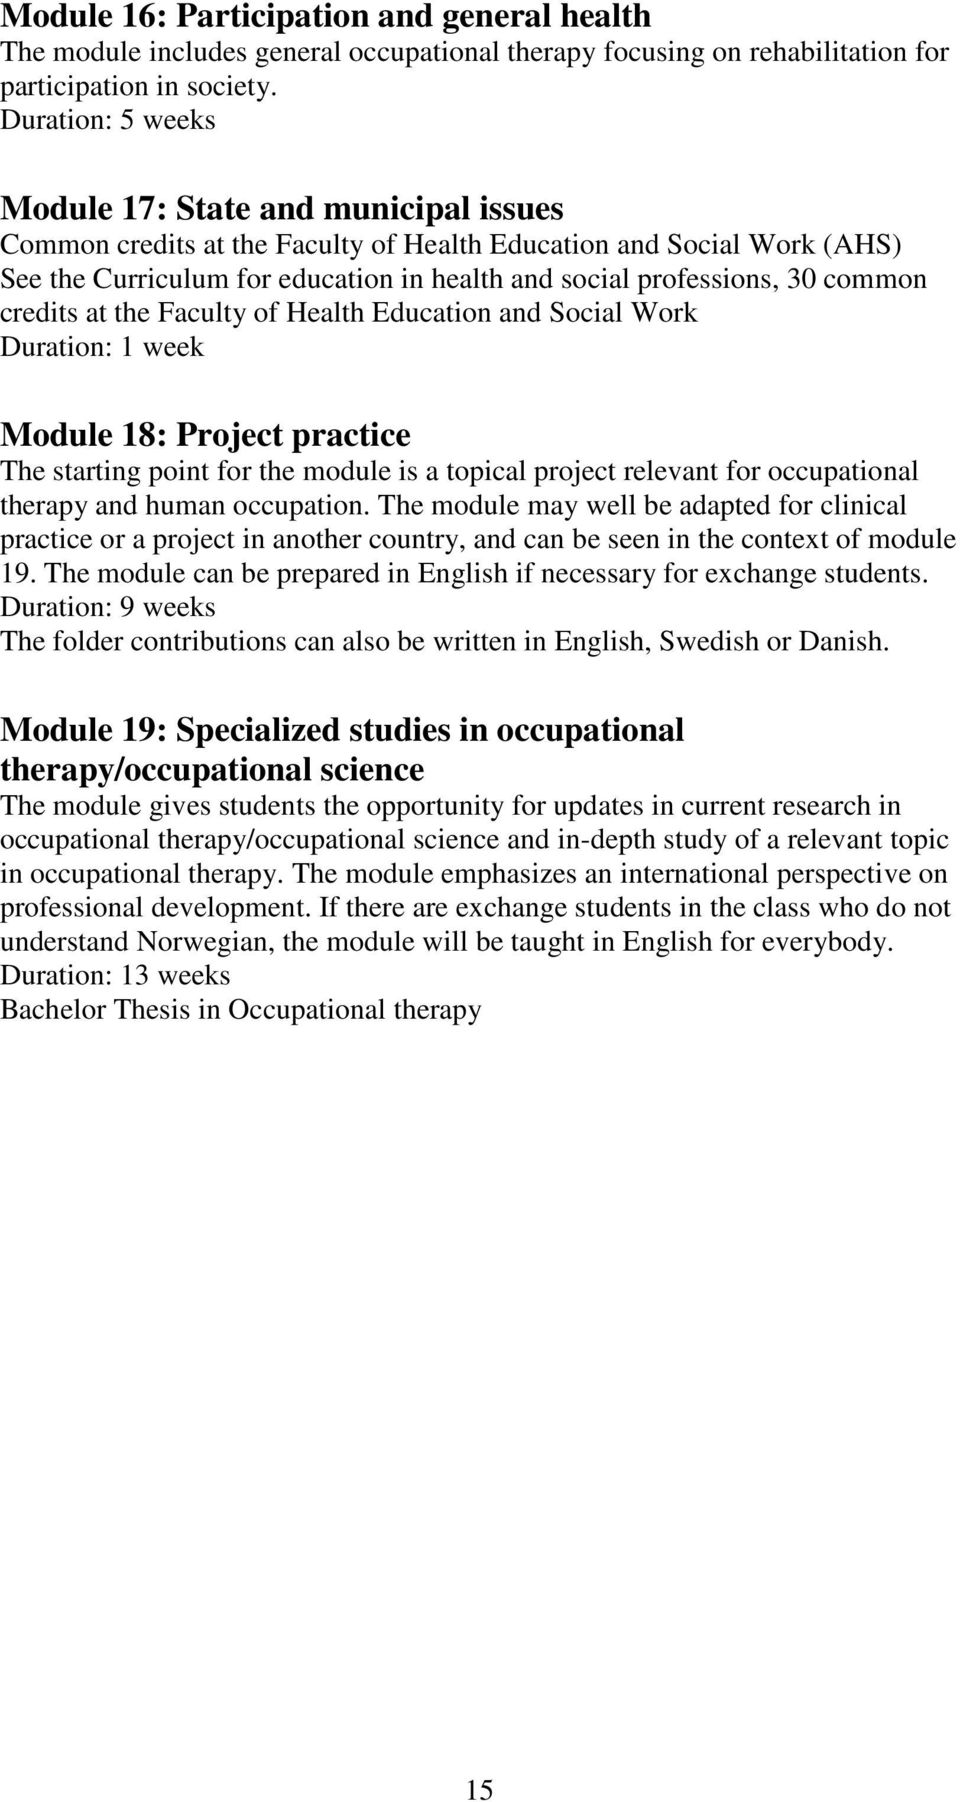 common credits at the Faculty of Health Education and Social Work Duration: 1 week Module 18: Project practice The starting point for the module is a topical project relevant for occupational therapy